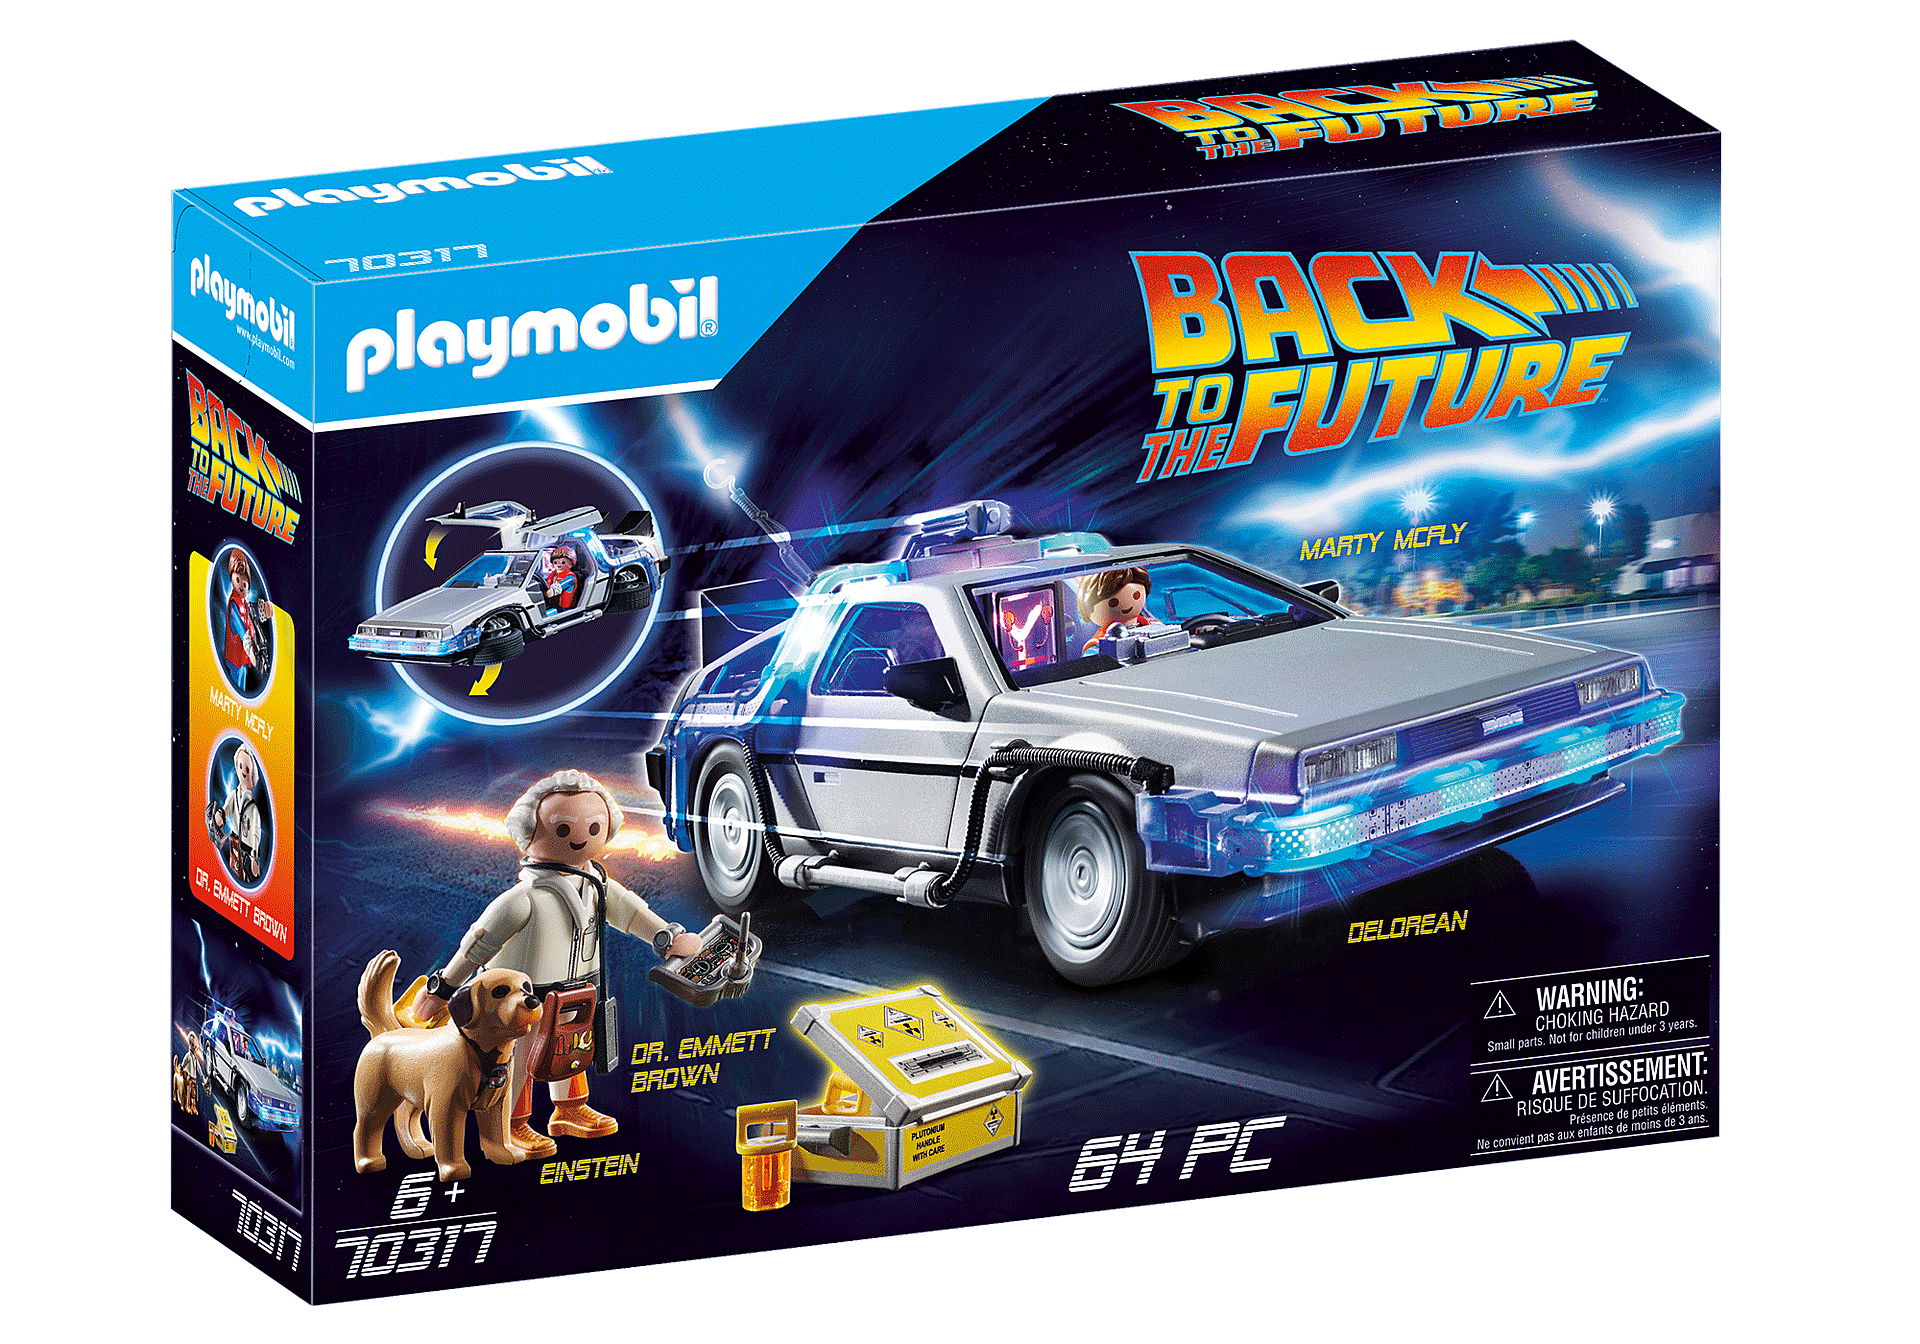 70317 Back to the Future DeLorean zoom image2